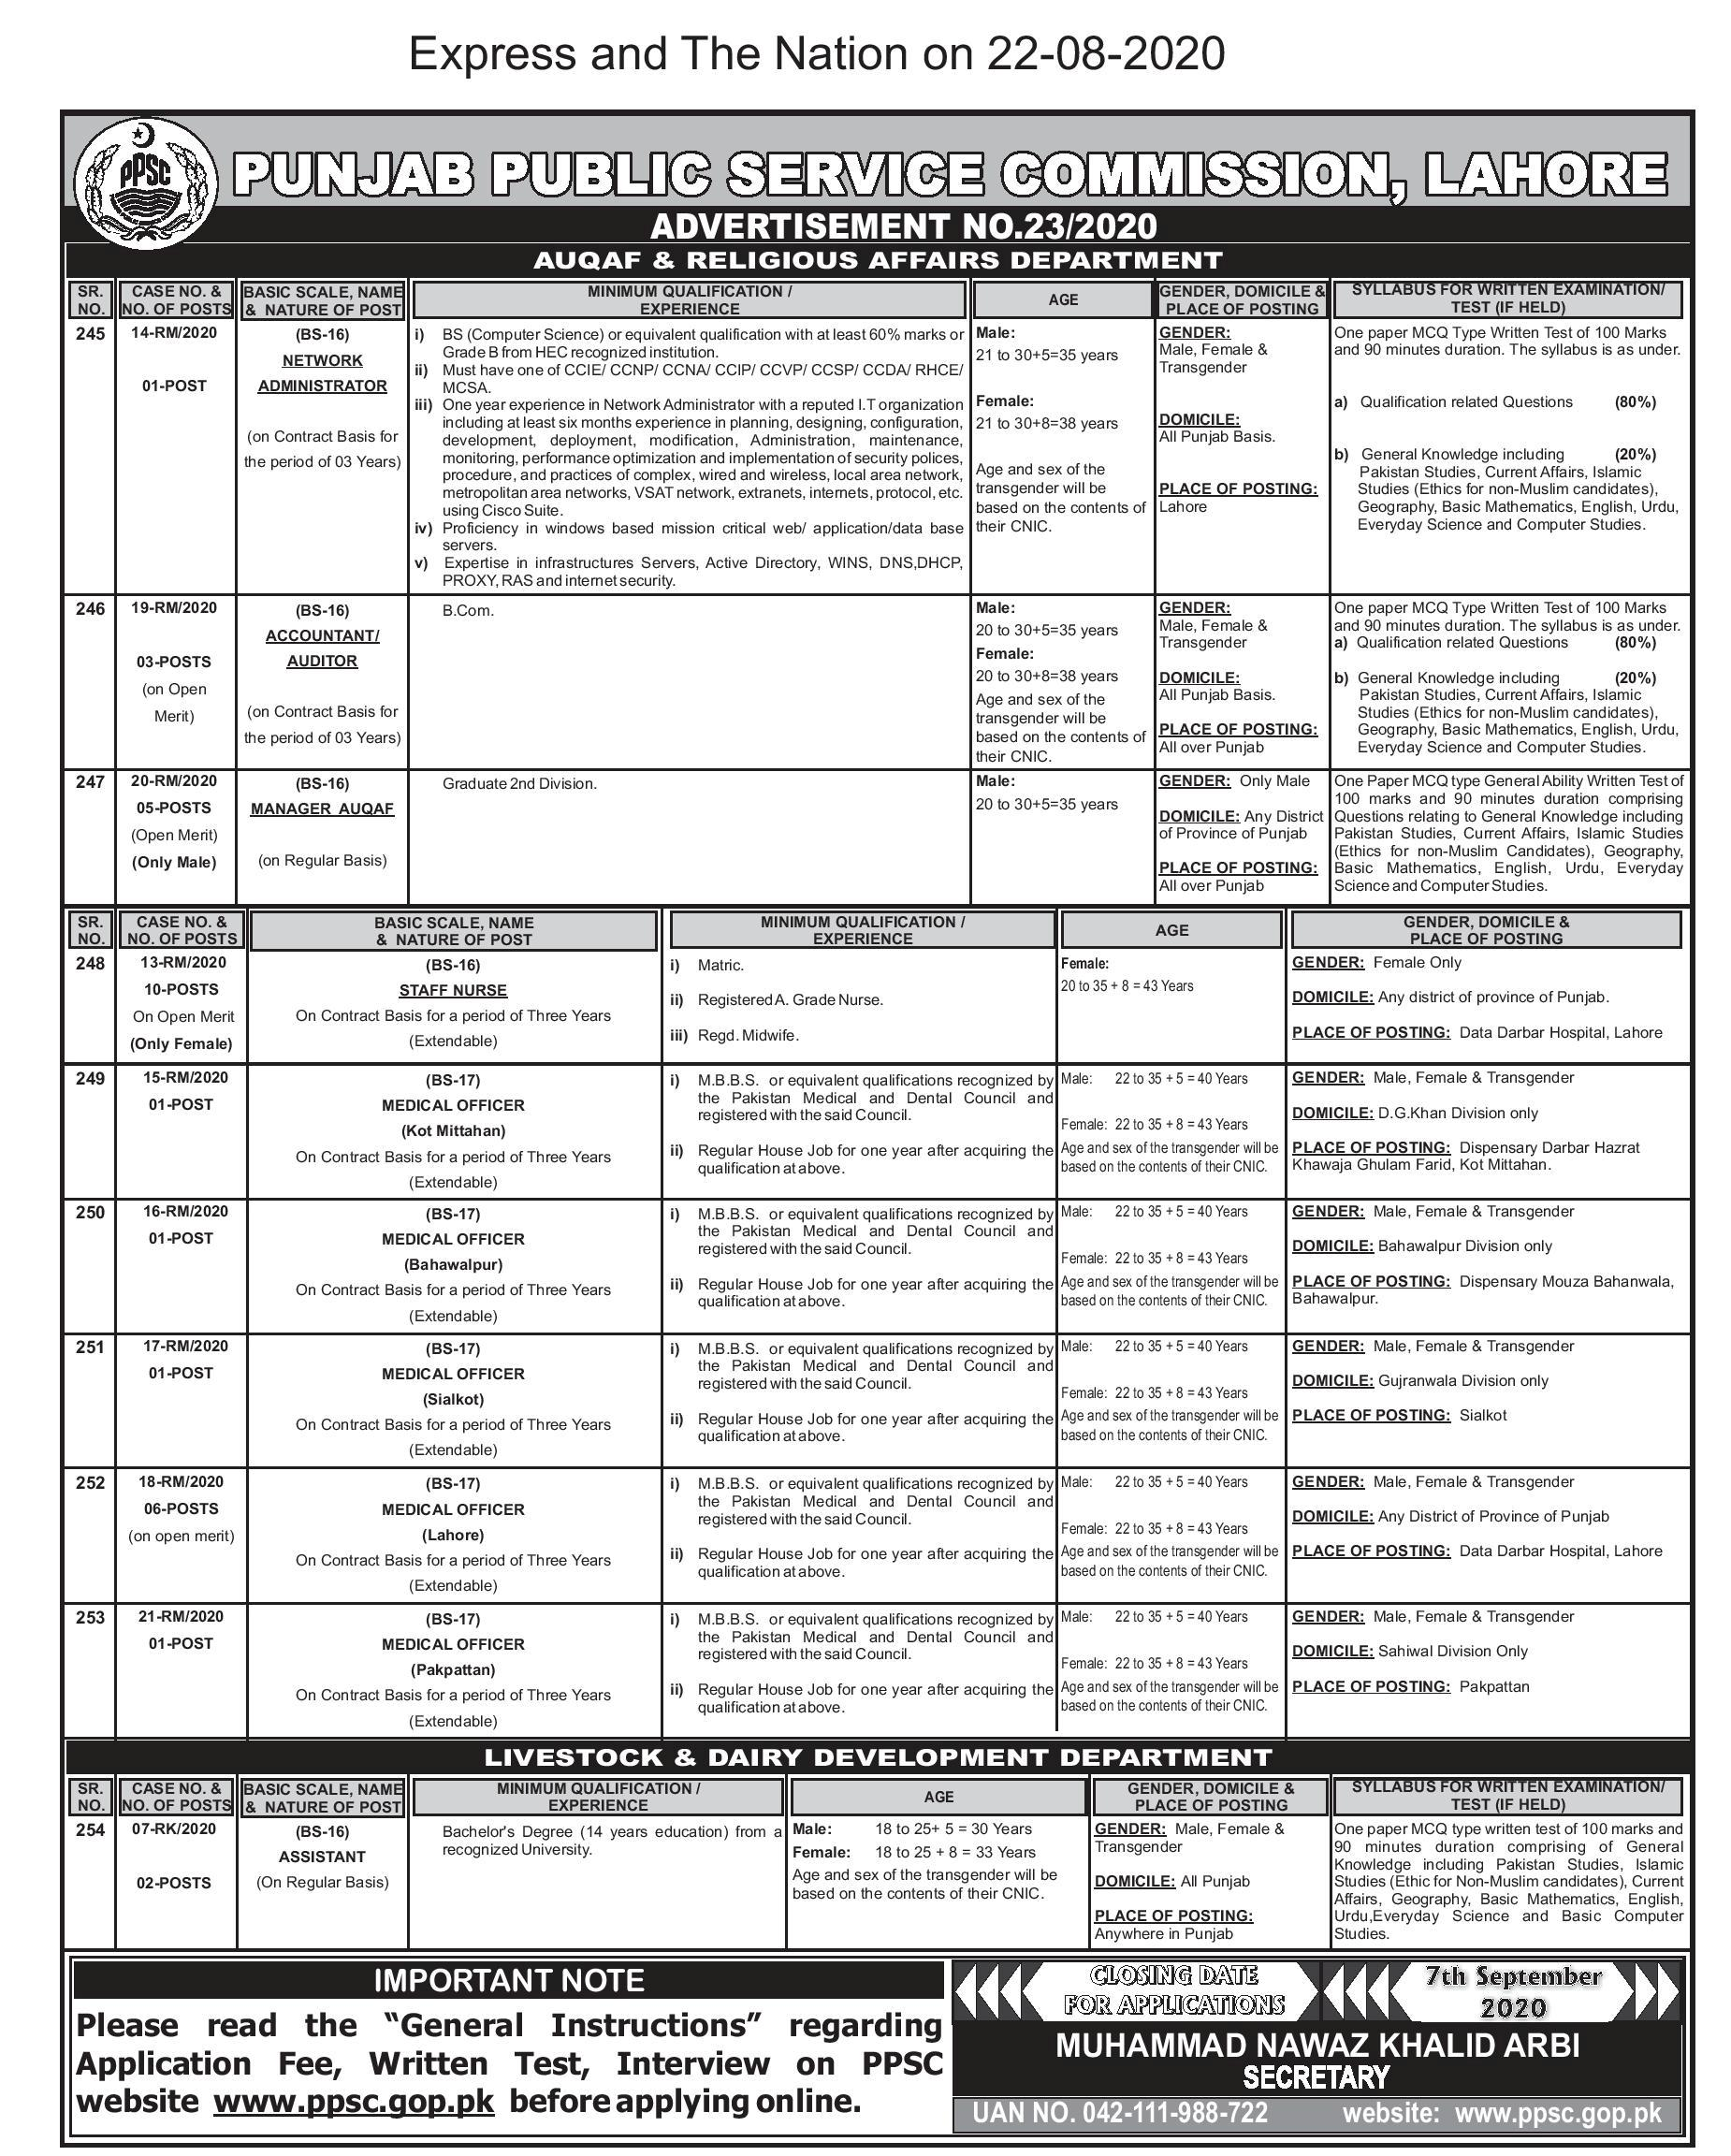 PPSC Auqaf Dairy Development Jobs 2020